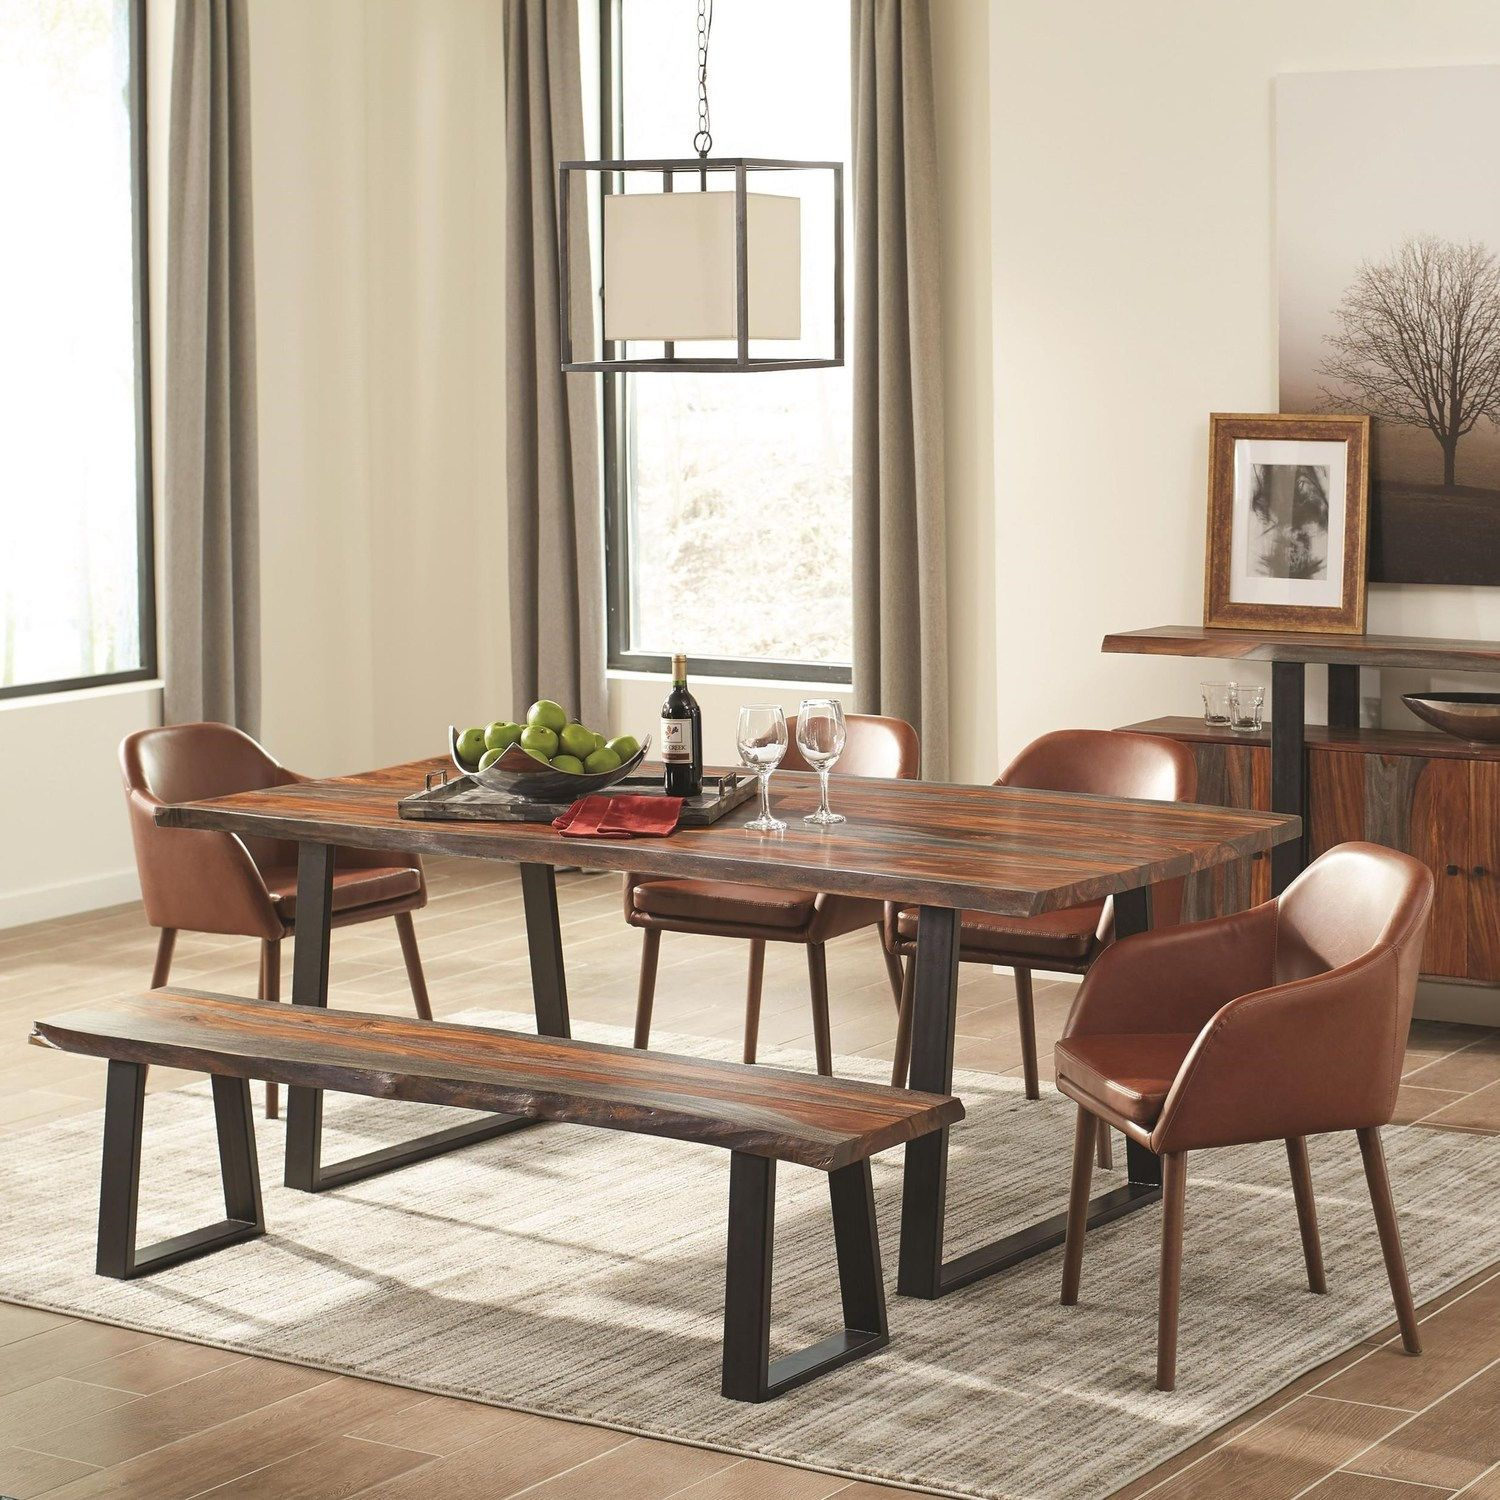 Jamestown Table 107511 103547 107515 Coaster Furniture Family Size Dining In 2020 Faux Leather Dining Chairs Live Edge Dining Table Dining Room Sets